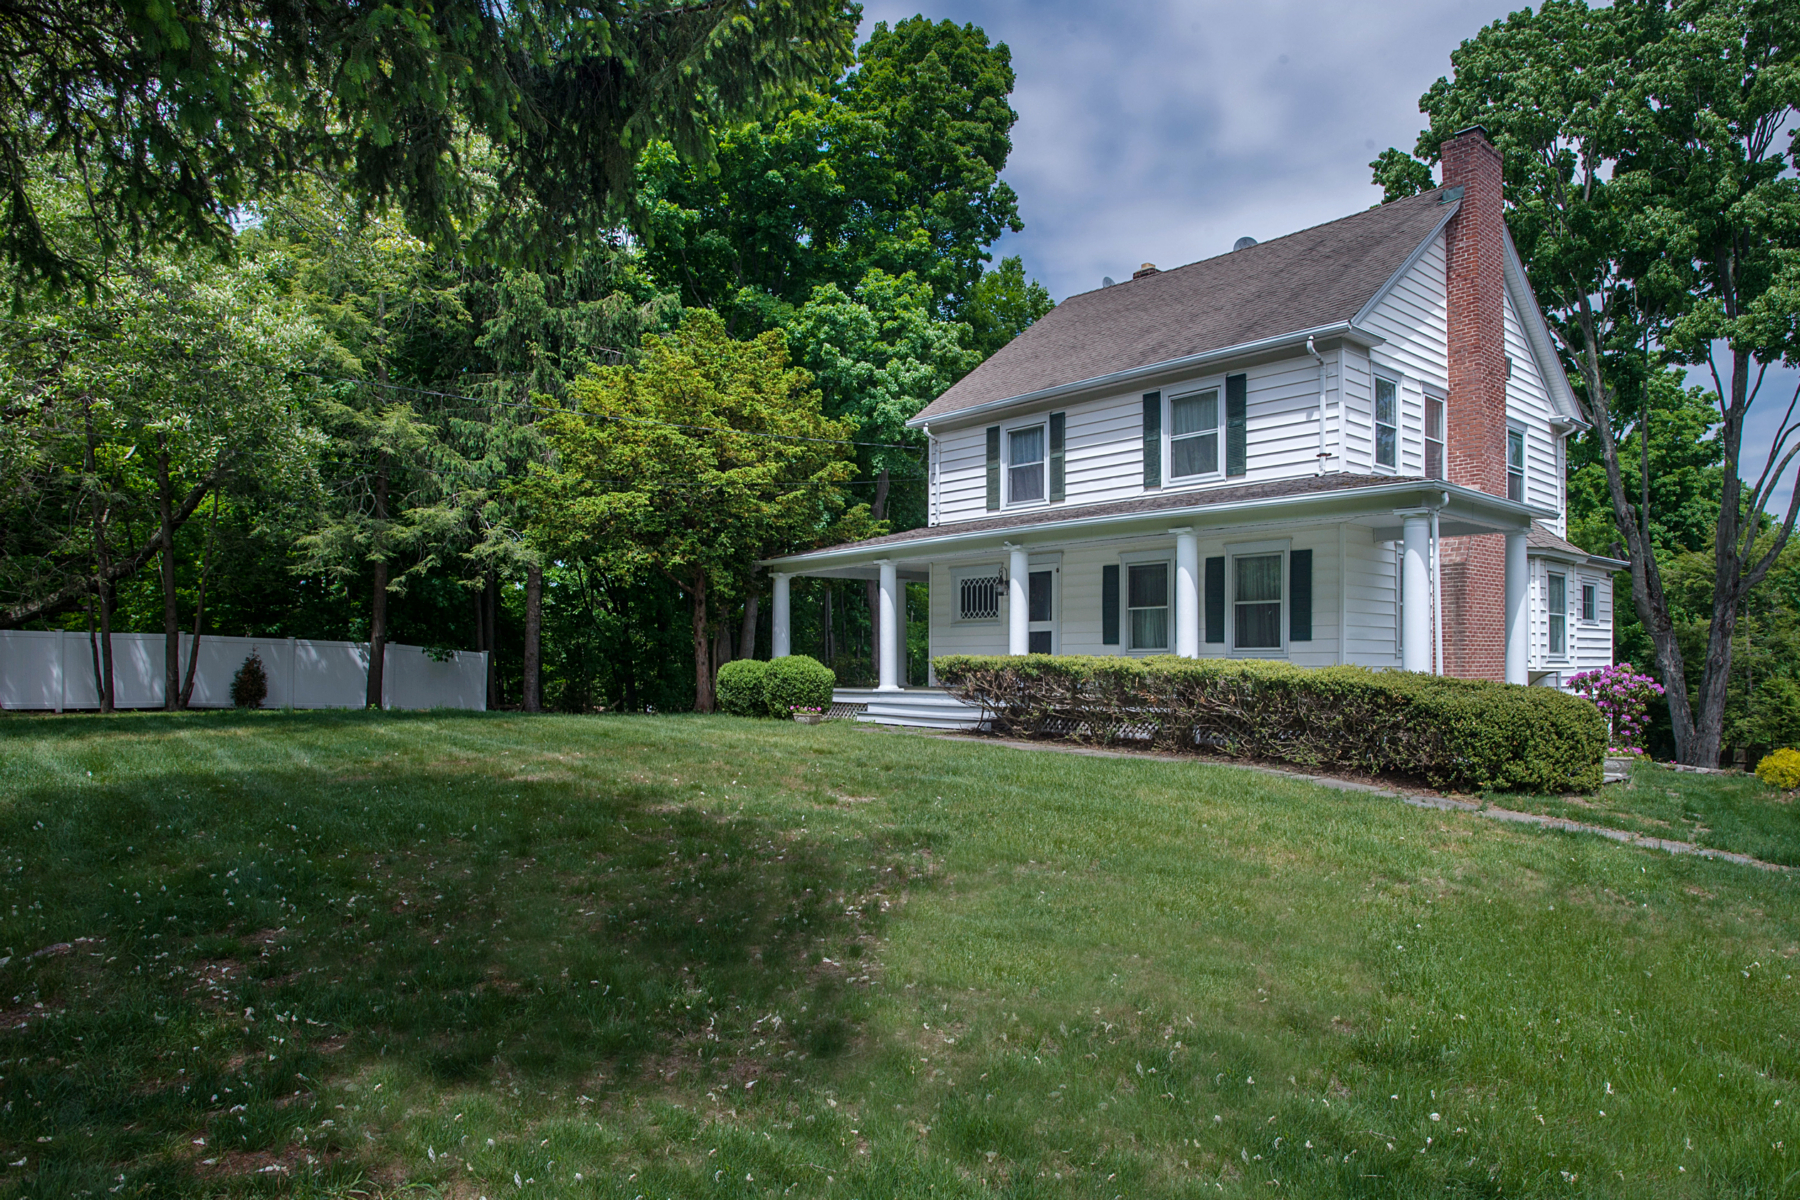 Single Family Home for Sale at Antique Lovers Delight 444 White Oak Shade Road New Canaan, Connecticut 06840 United States